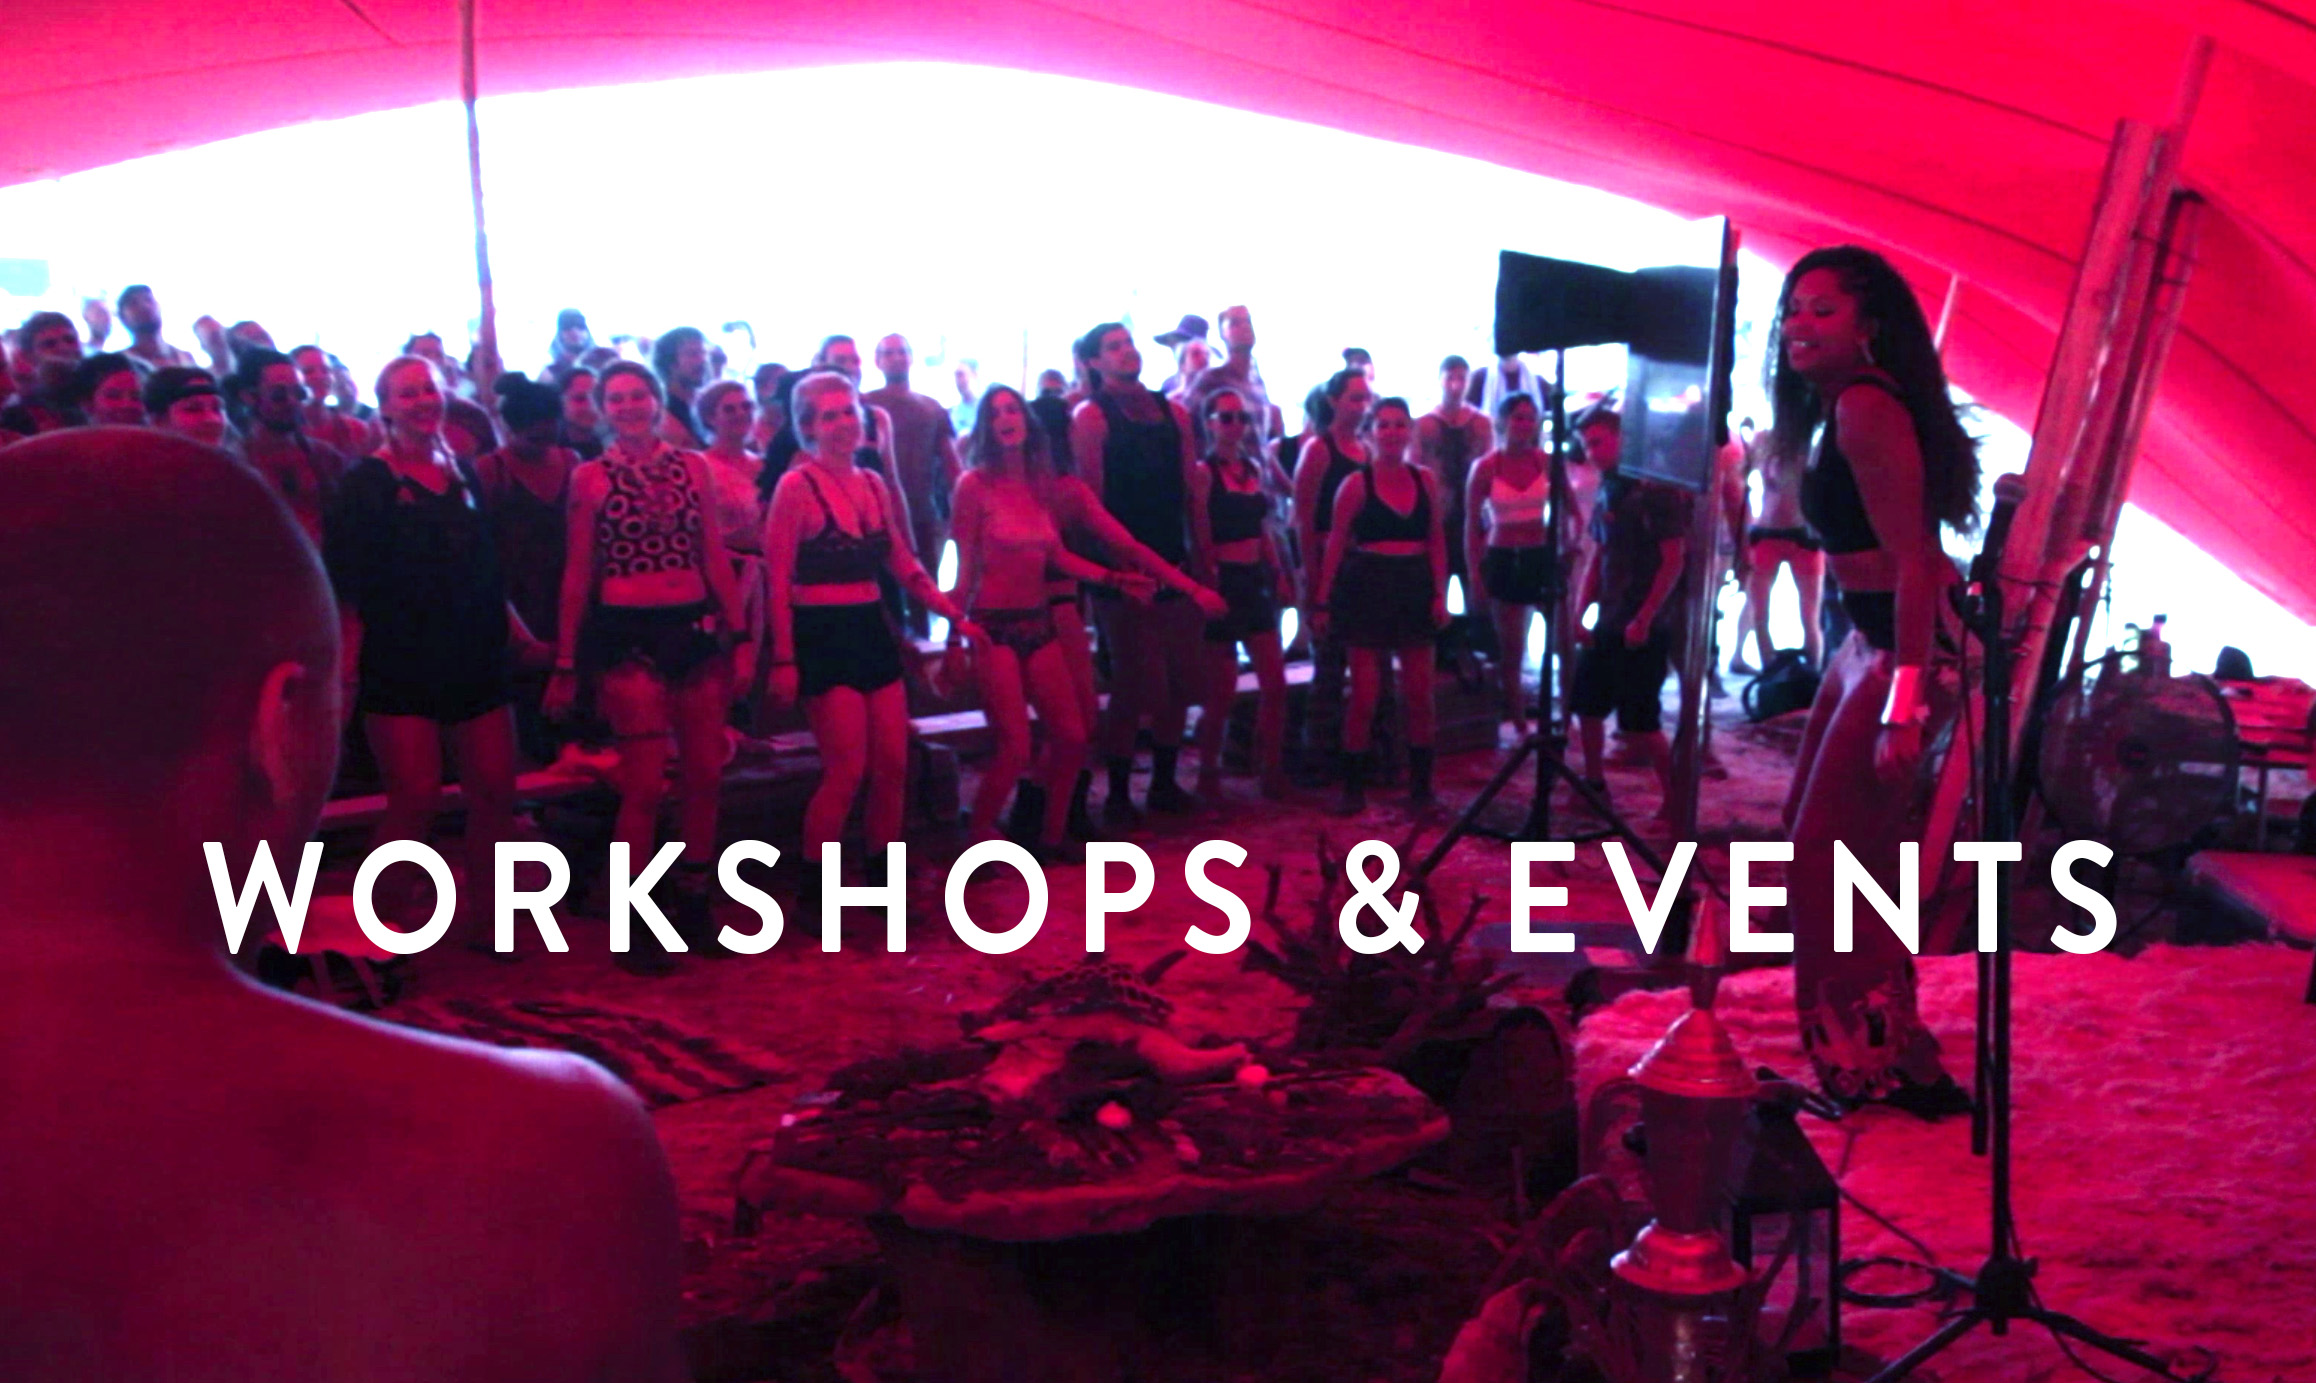 Workshops and events.jpg